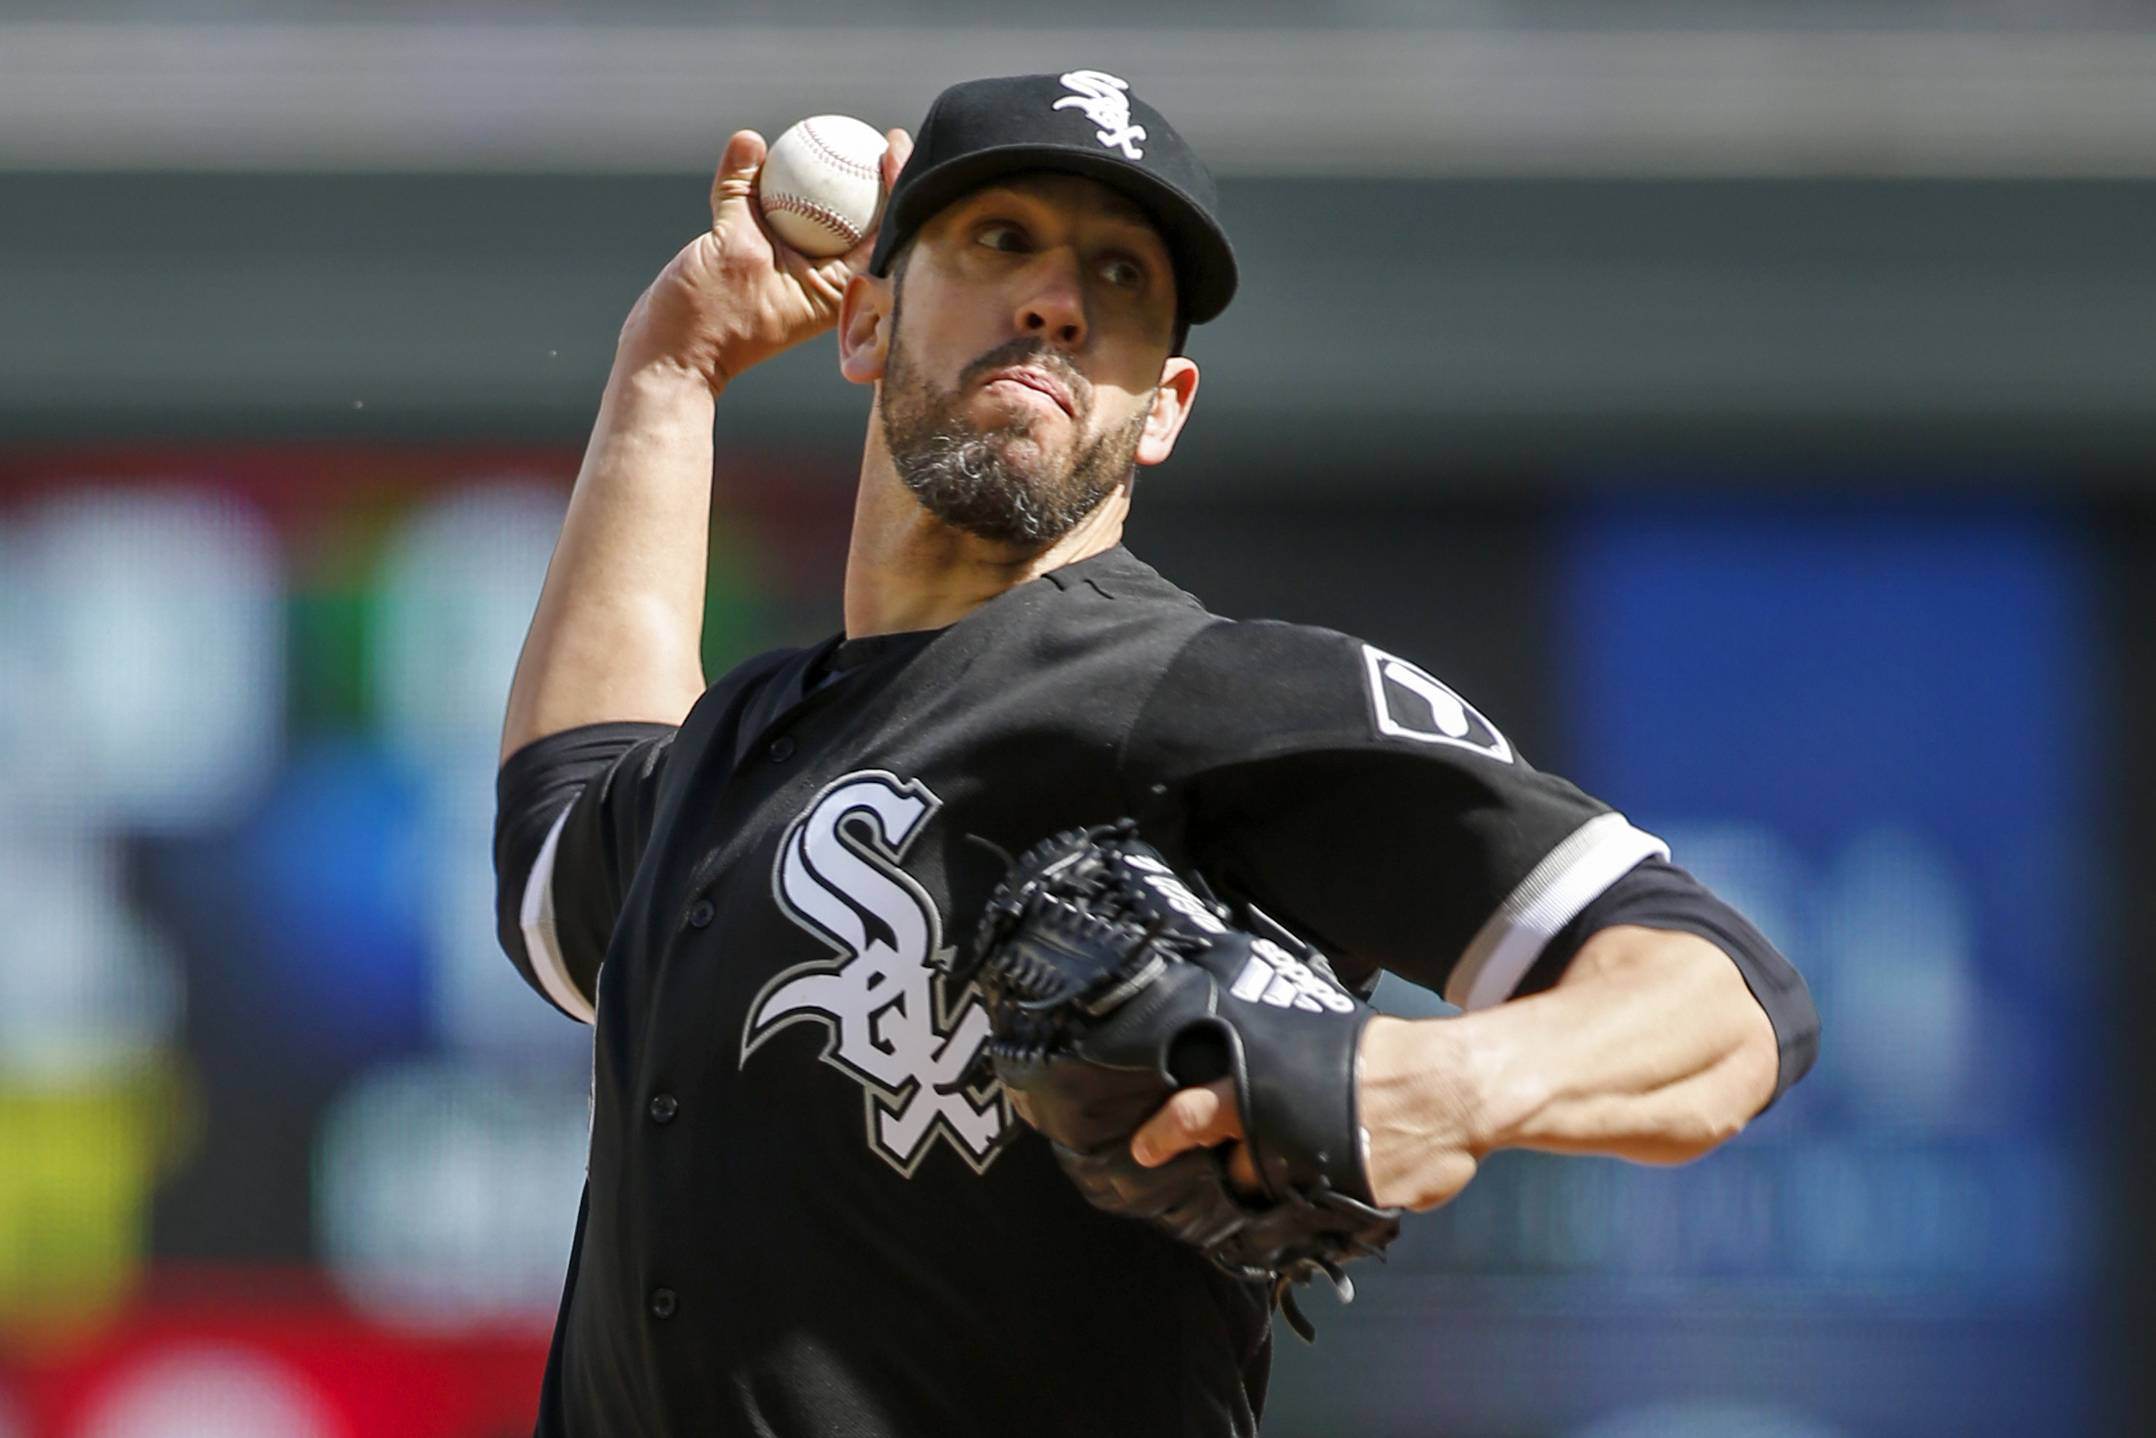 The Chicago White Sox have 7 players on the disabled list, but most of them are on the road to recovery. That includes starters Carlos Rodon, who has not pitched this season, and James Shields, who went down with a lat strain after 3 starts.